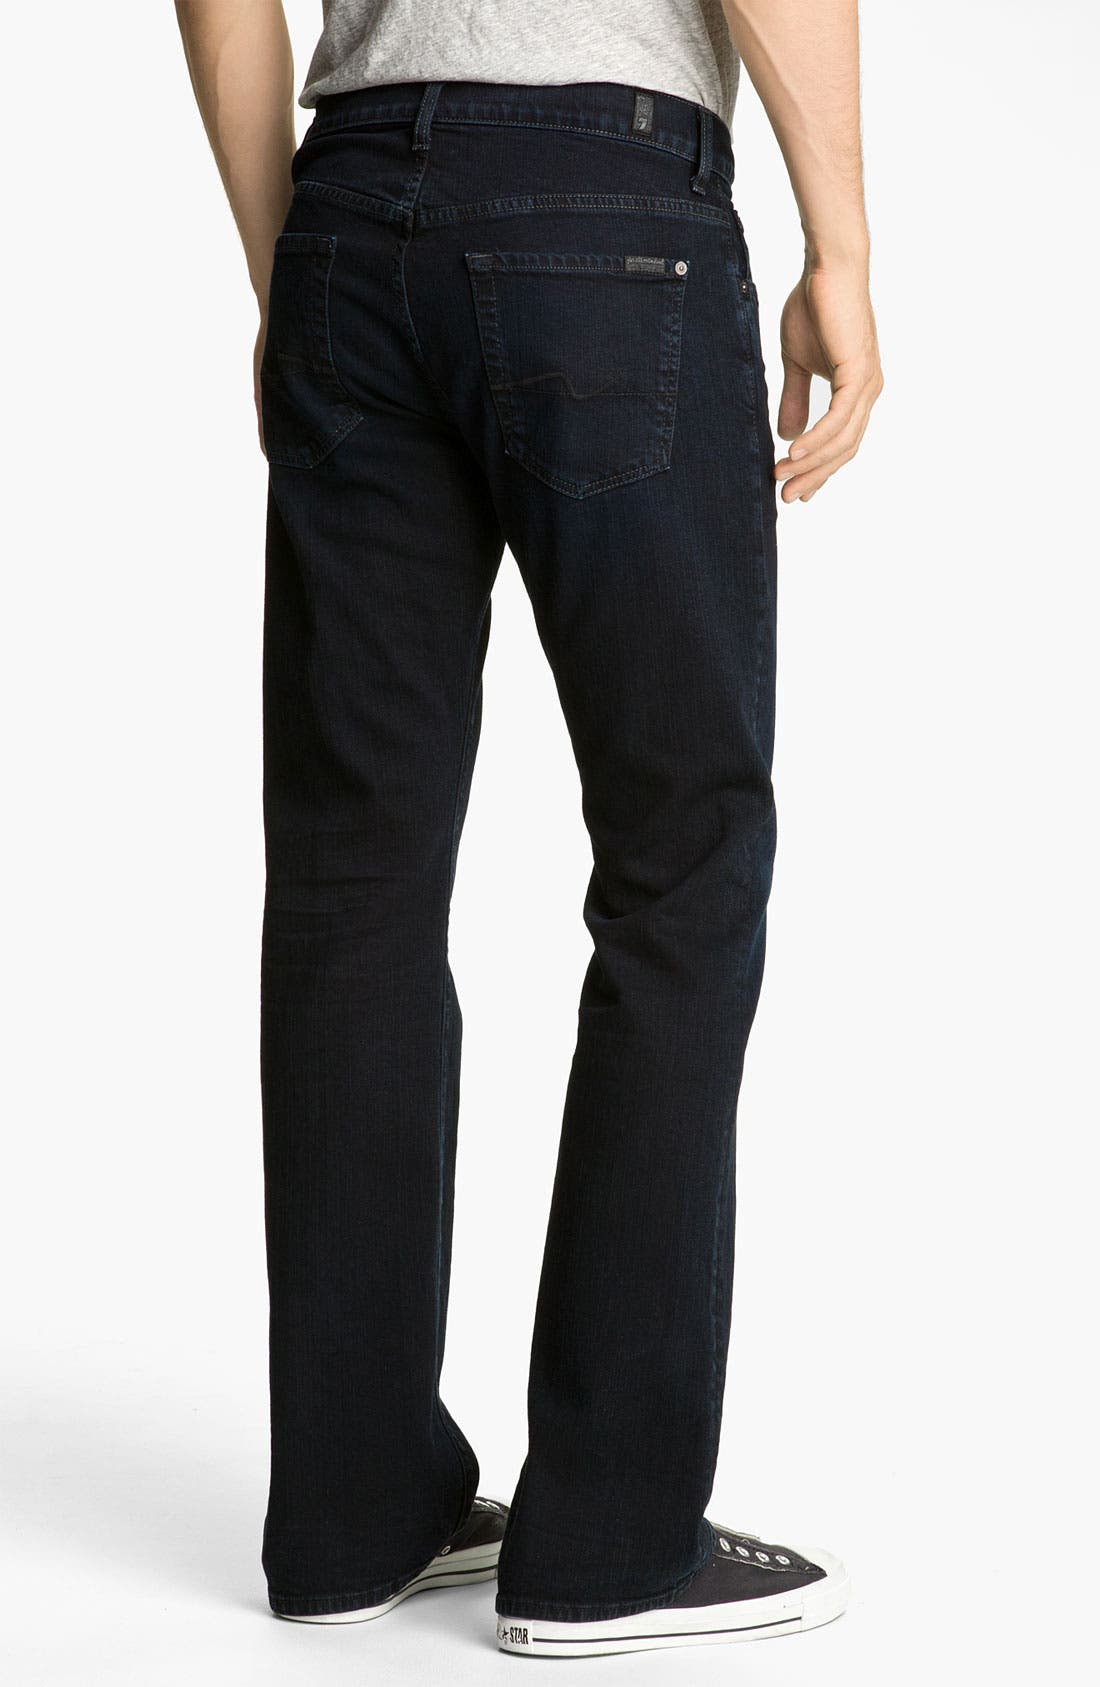 Alternate Image 1 Selected - 7 For All Mankind® 'Brett' Bootcut Jeans (Autumn Eclipse)